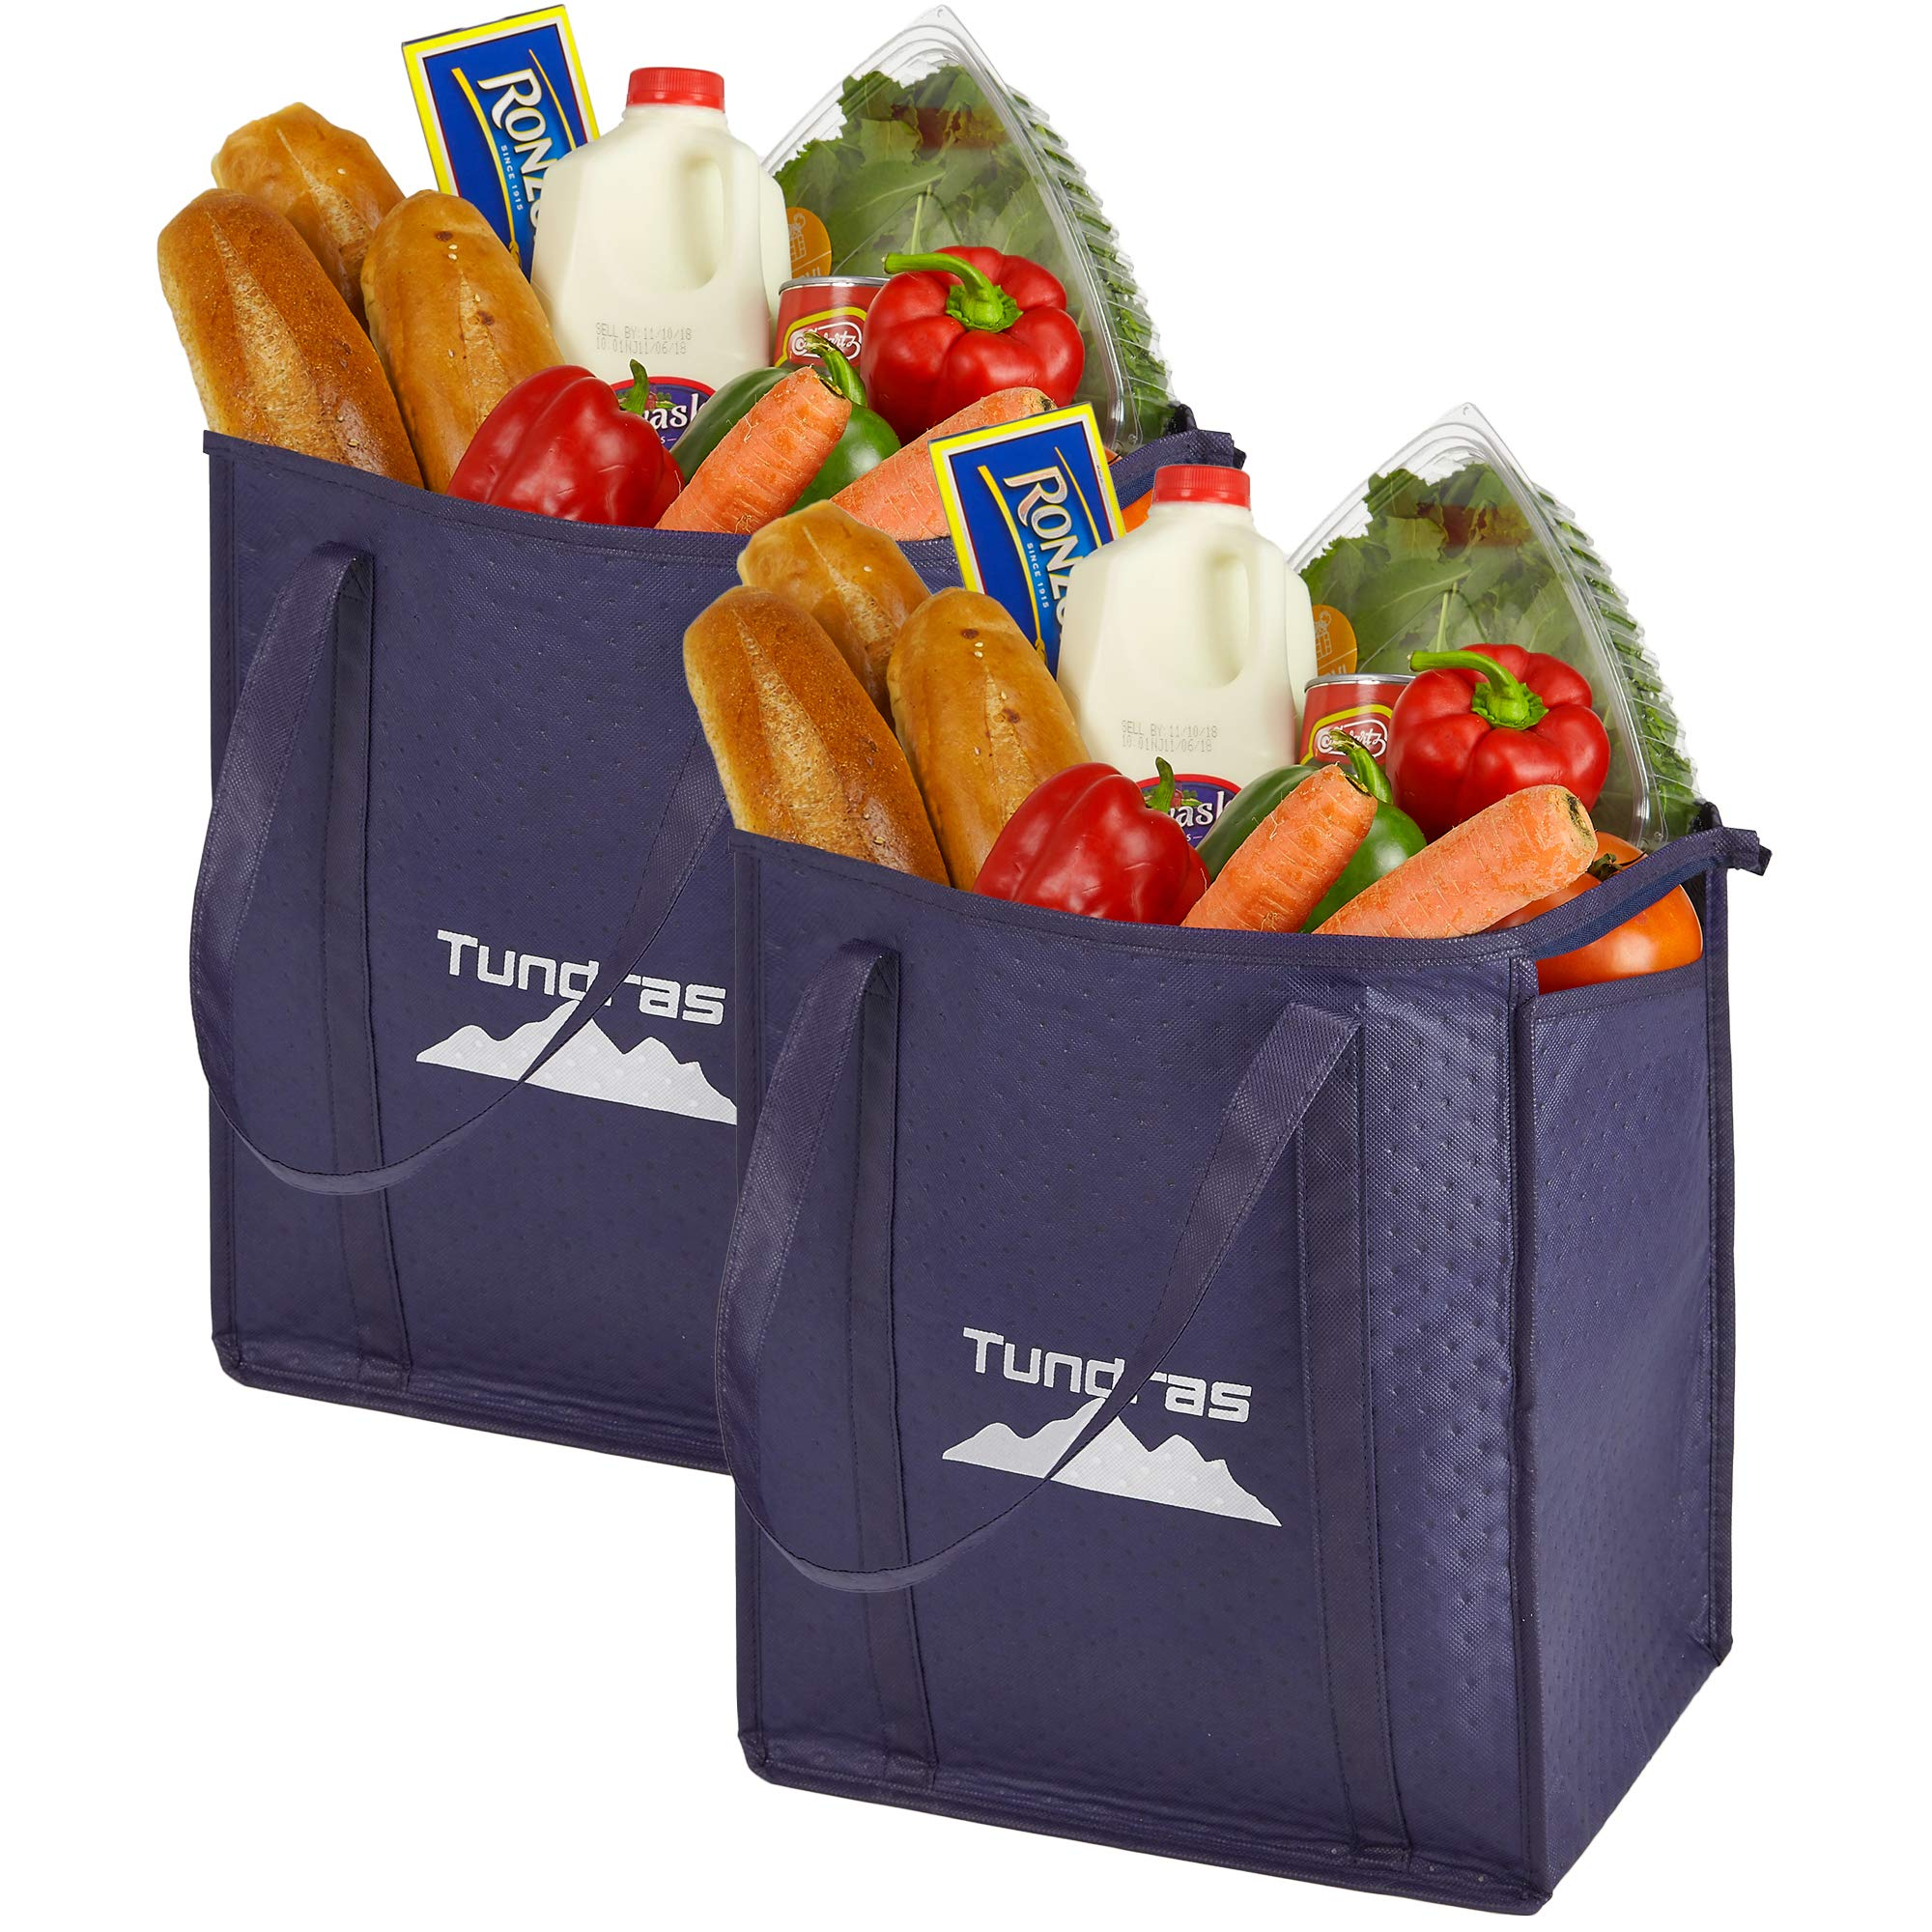 Reusable Grocery Bags, Insulated – 2 Pack, Navy – 7.5 Gallon Thermal Cooler Tote – Reinforced Handles, Zipper Closure, Collapsible Tote Folds Flat – For Shopping, Hot and Cold Food insulated lunch bag